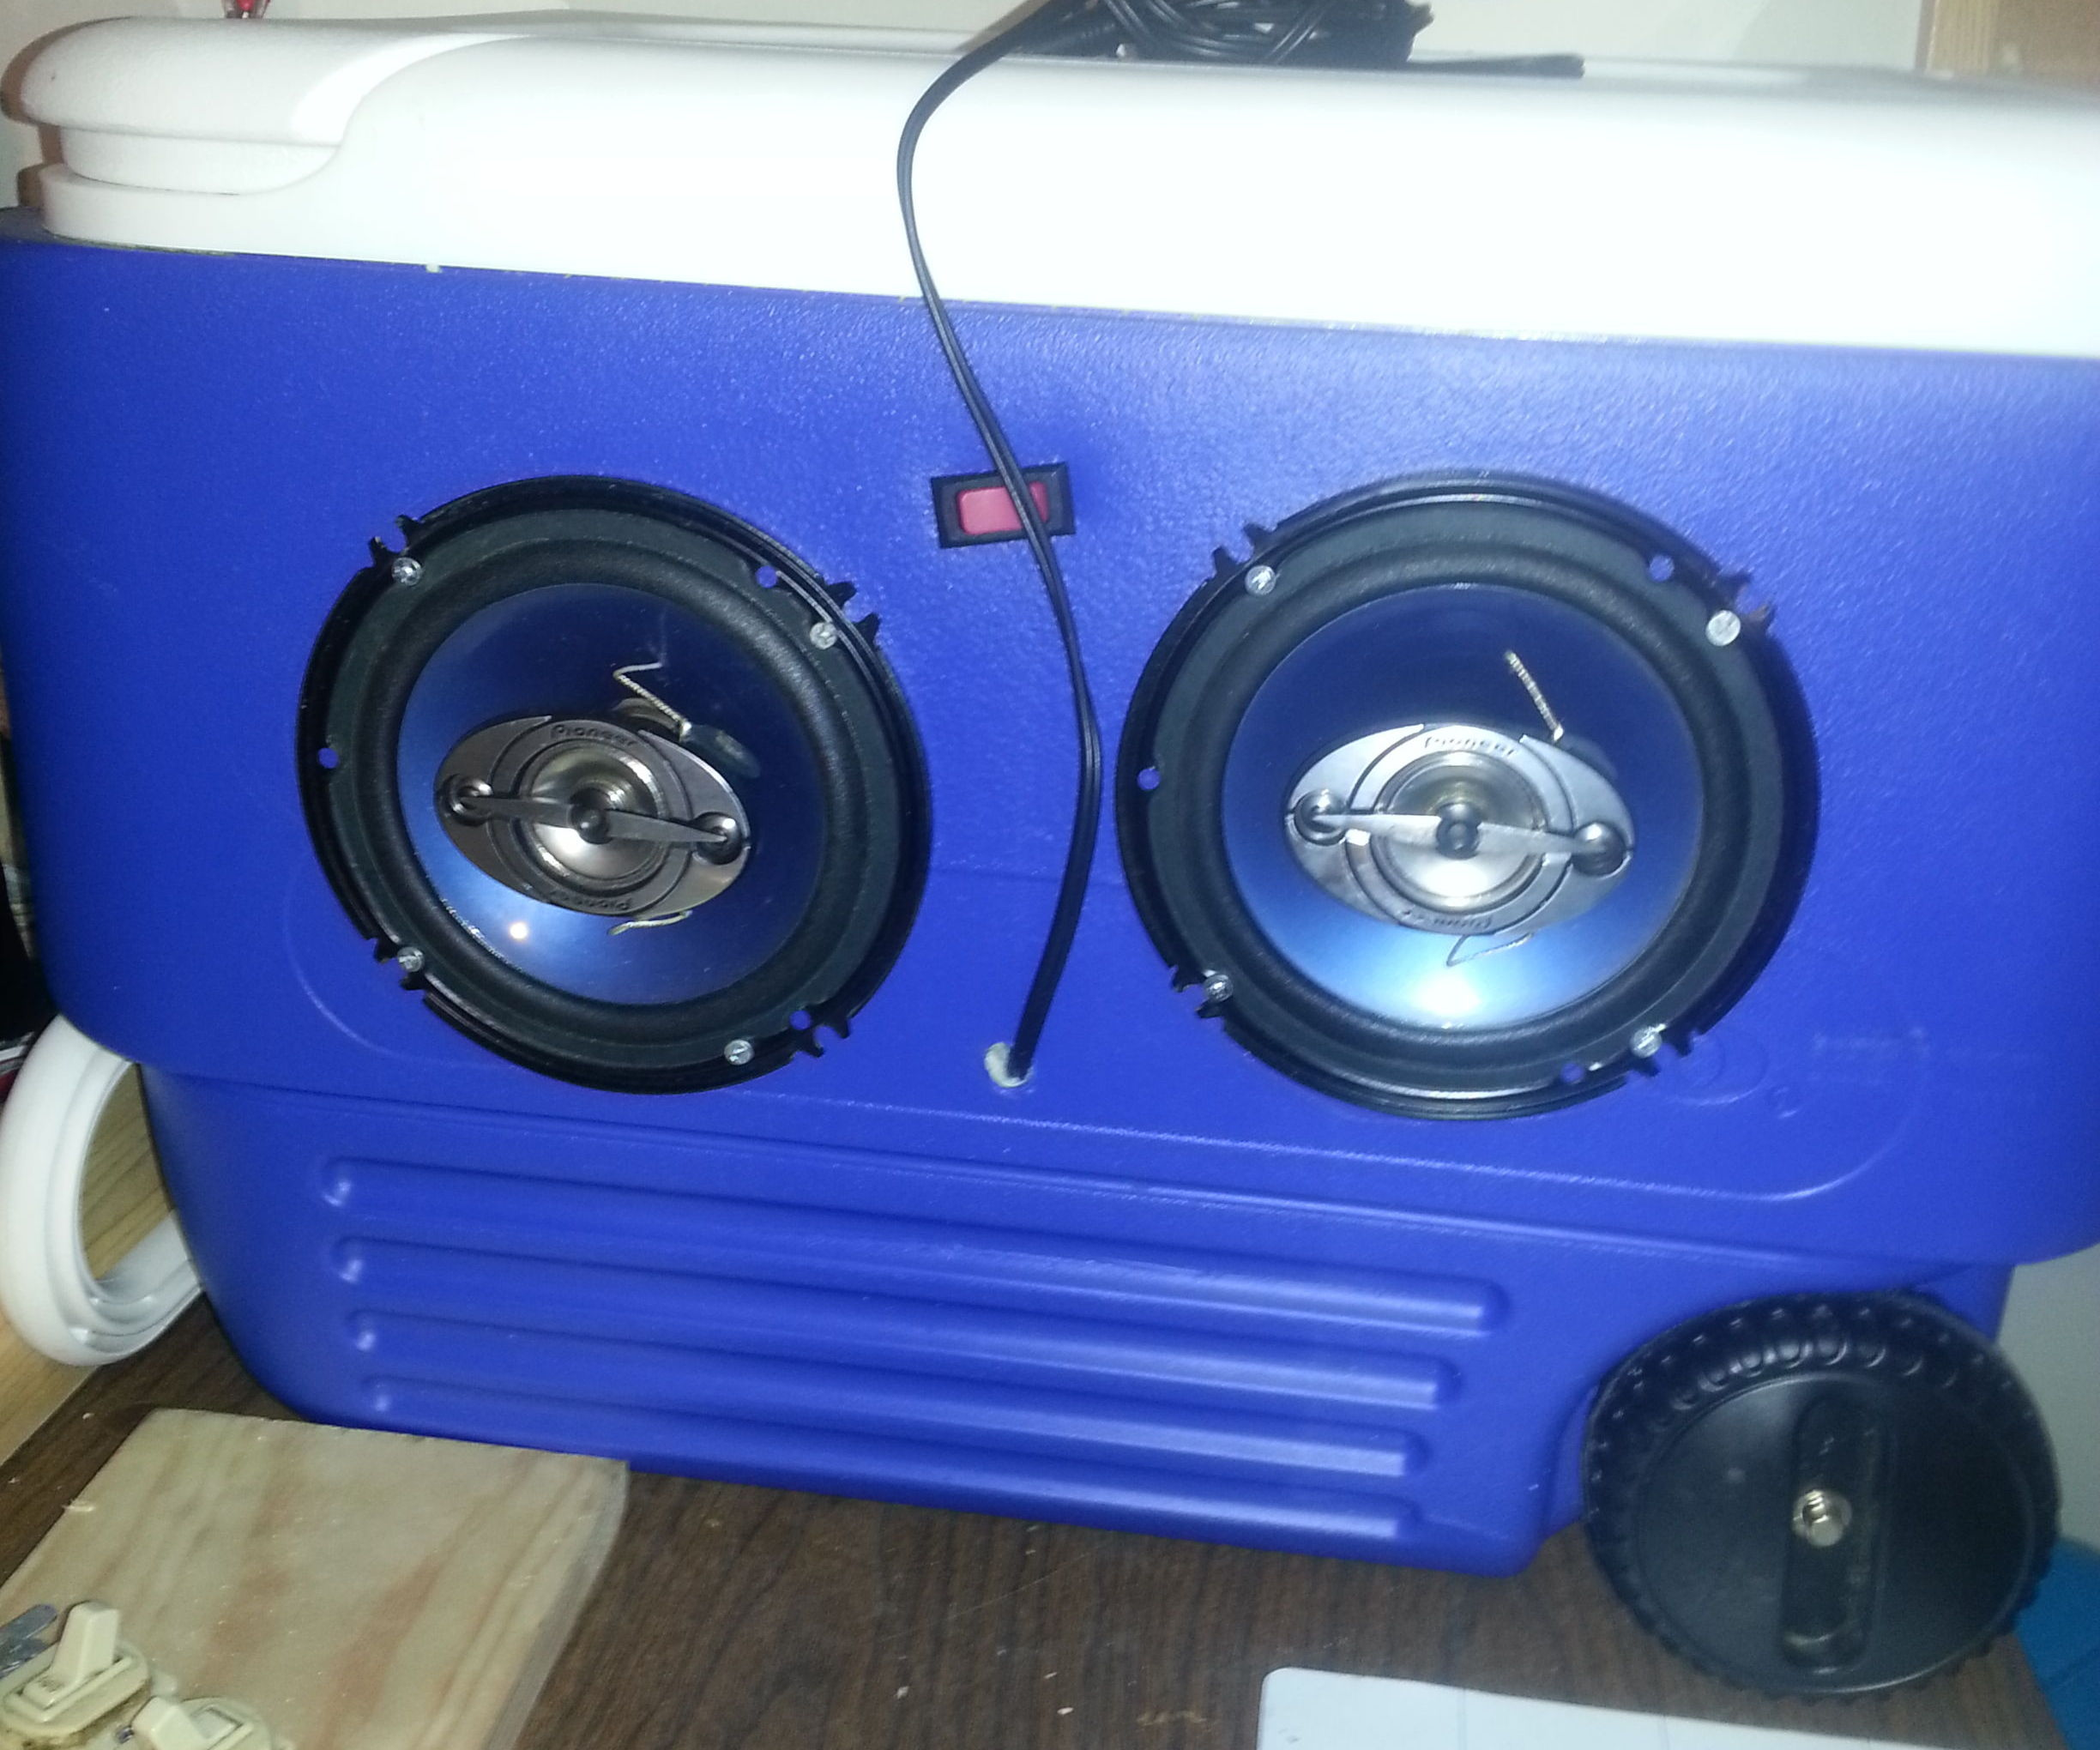 12 Volt portable stereo